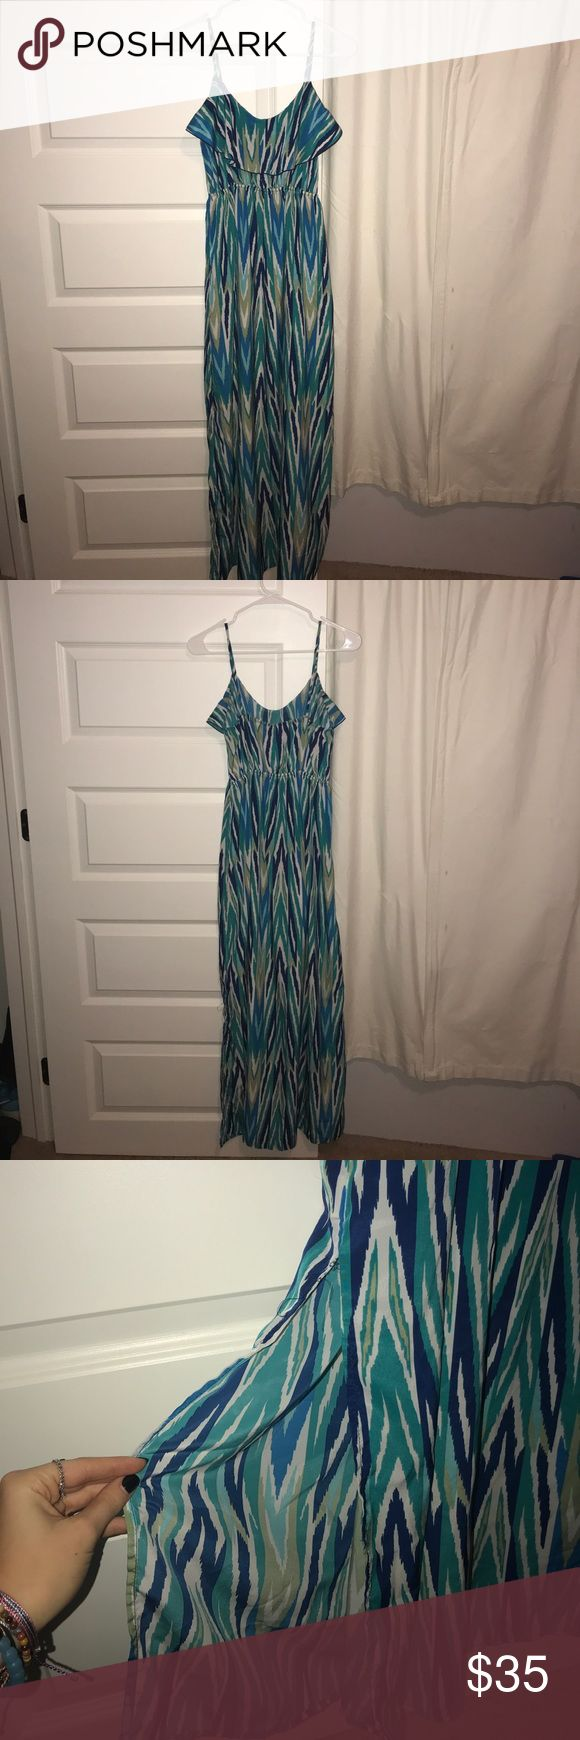 Comfortable, and silky Maxi Dress Originally brought for $50 from Von Maur. One of my absolute favorite dresses! Would be super cute as a beach dress, date night dress, family or friend birthday party dress! Hugs the chest and flows down. Also the slit in the dress is a little worn towards the top Soprano Dresses Maxi